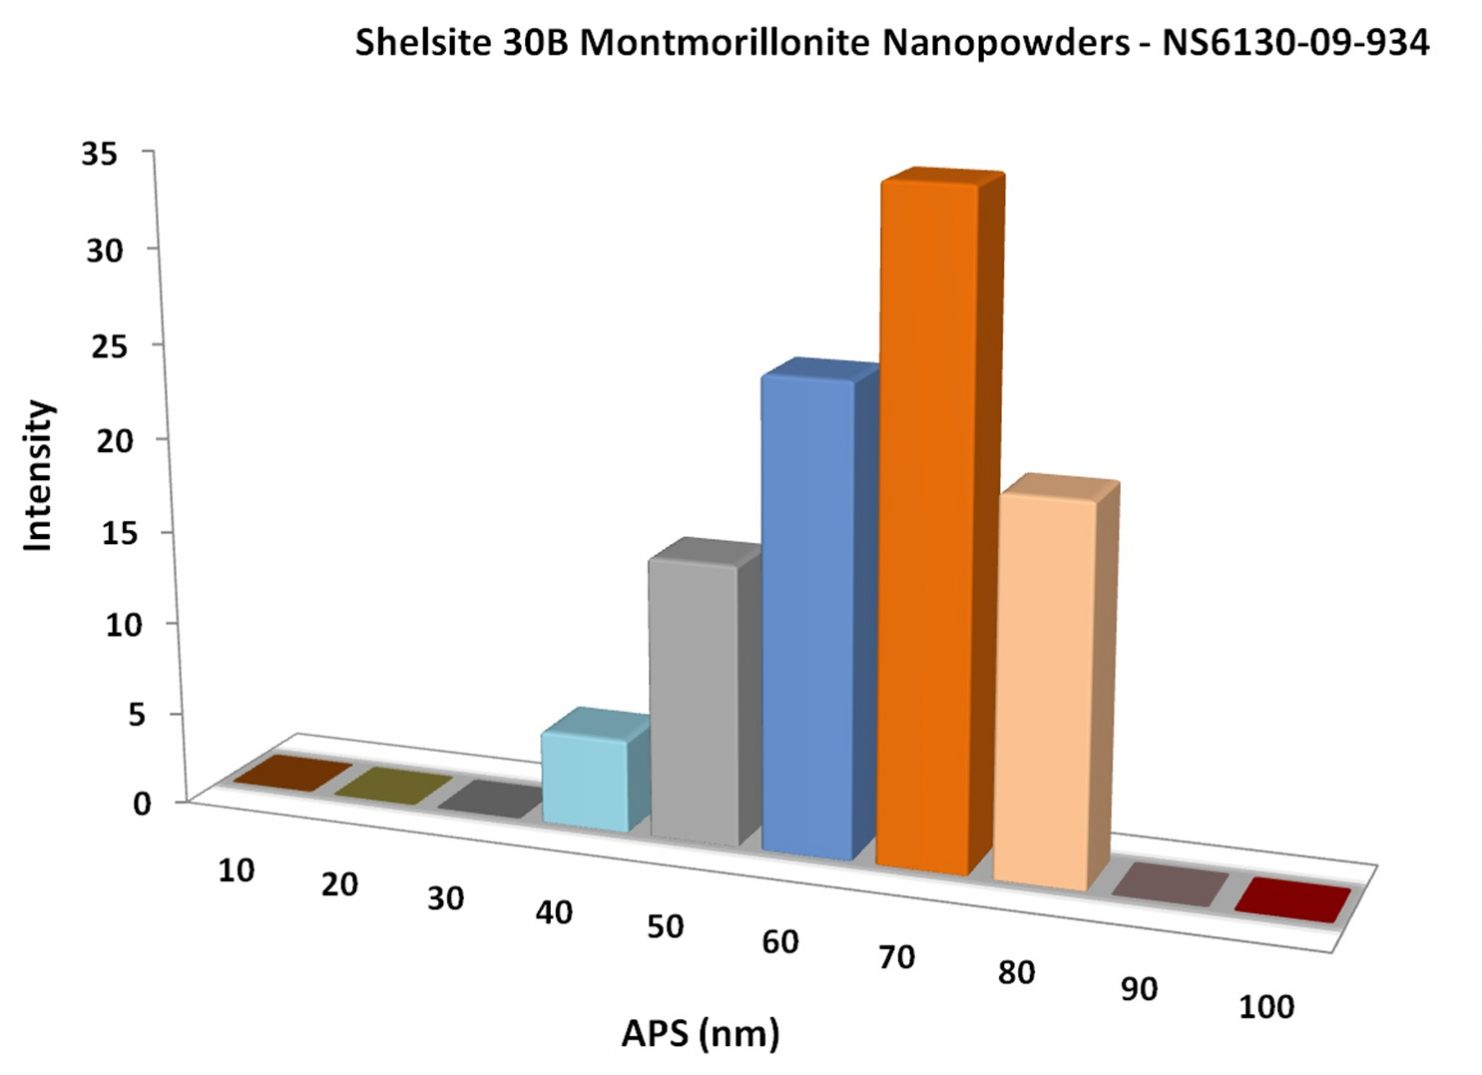 Particles Size Analysis - Shelsite 30B Montmorillonite Nanoparticles